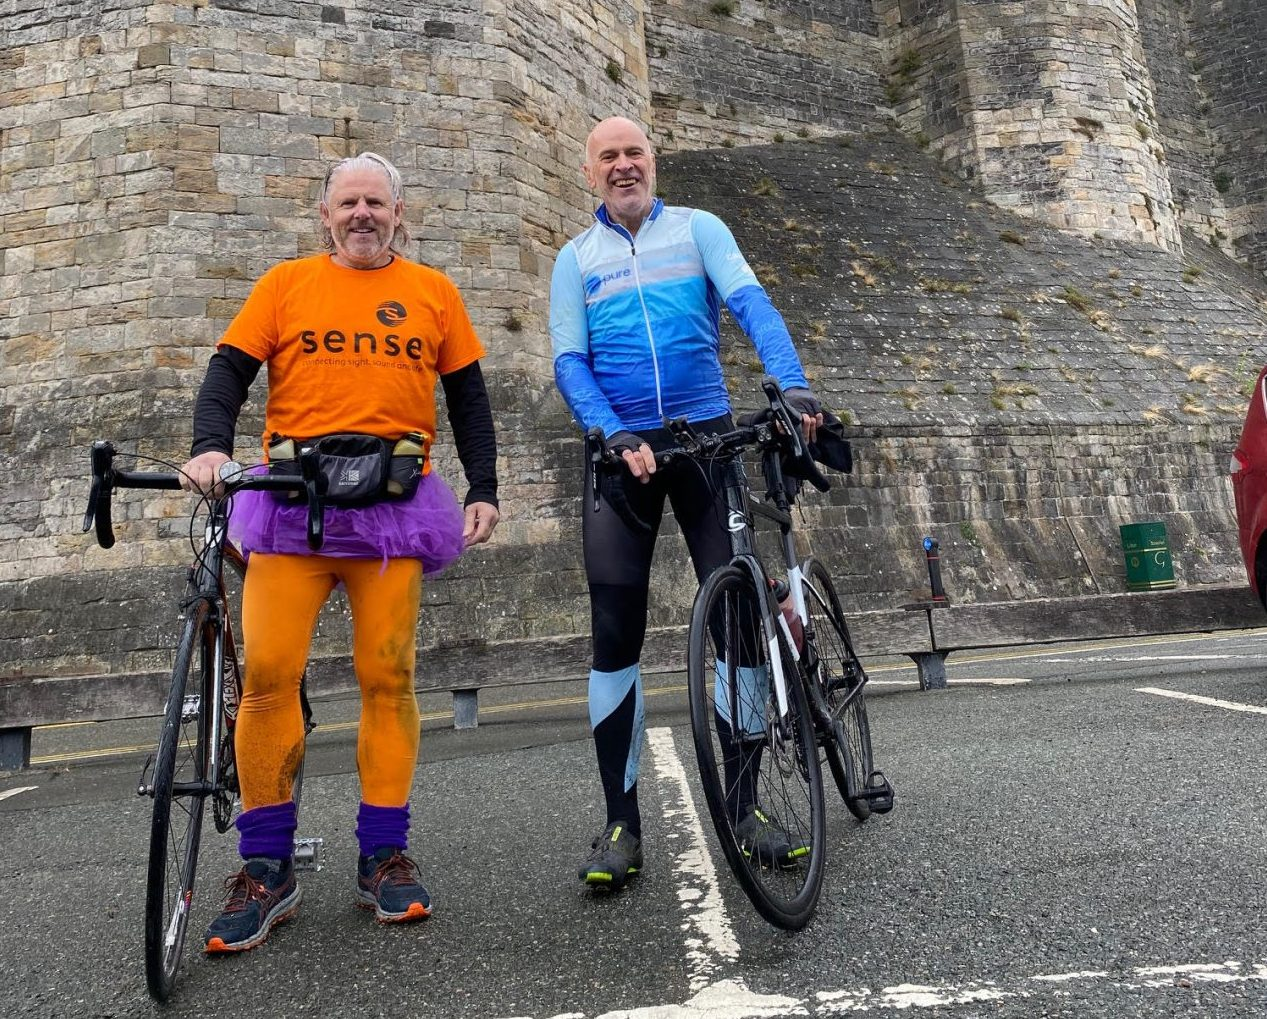 Fearless charity ambassador receives anonymous donation for his 'senseless' challenge